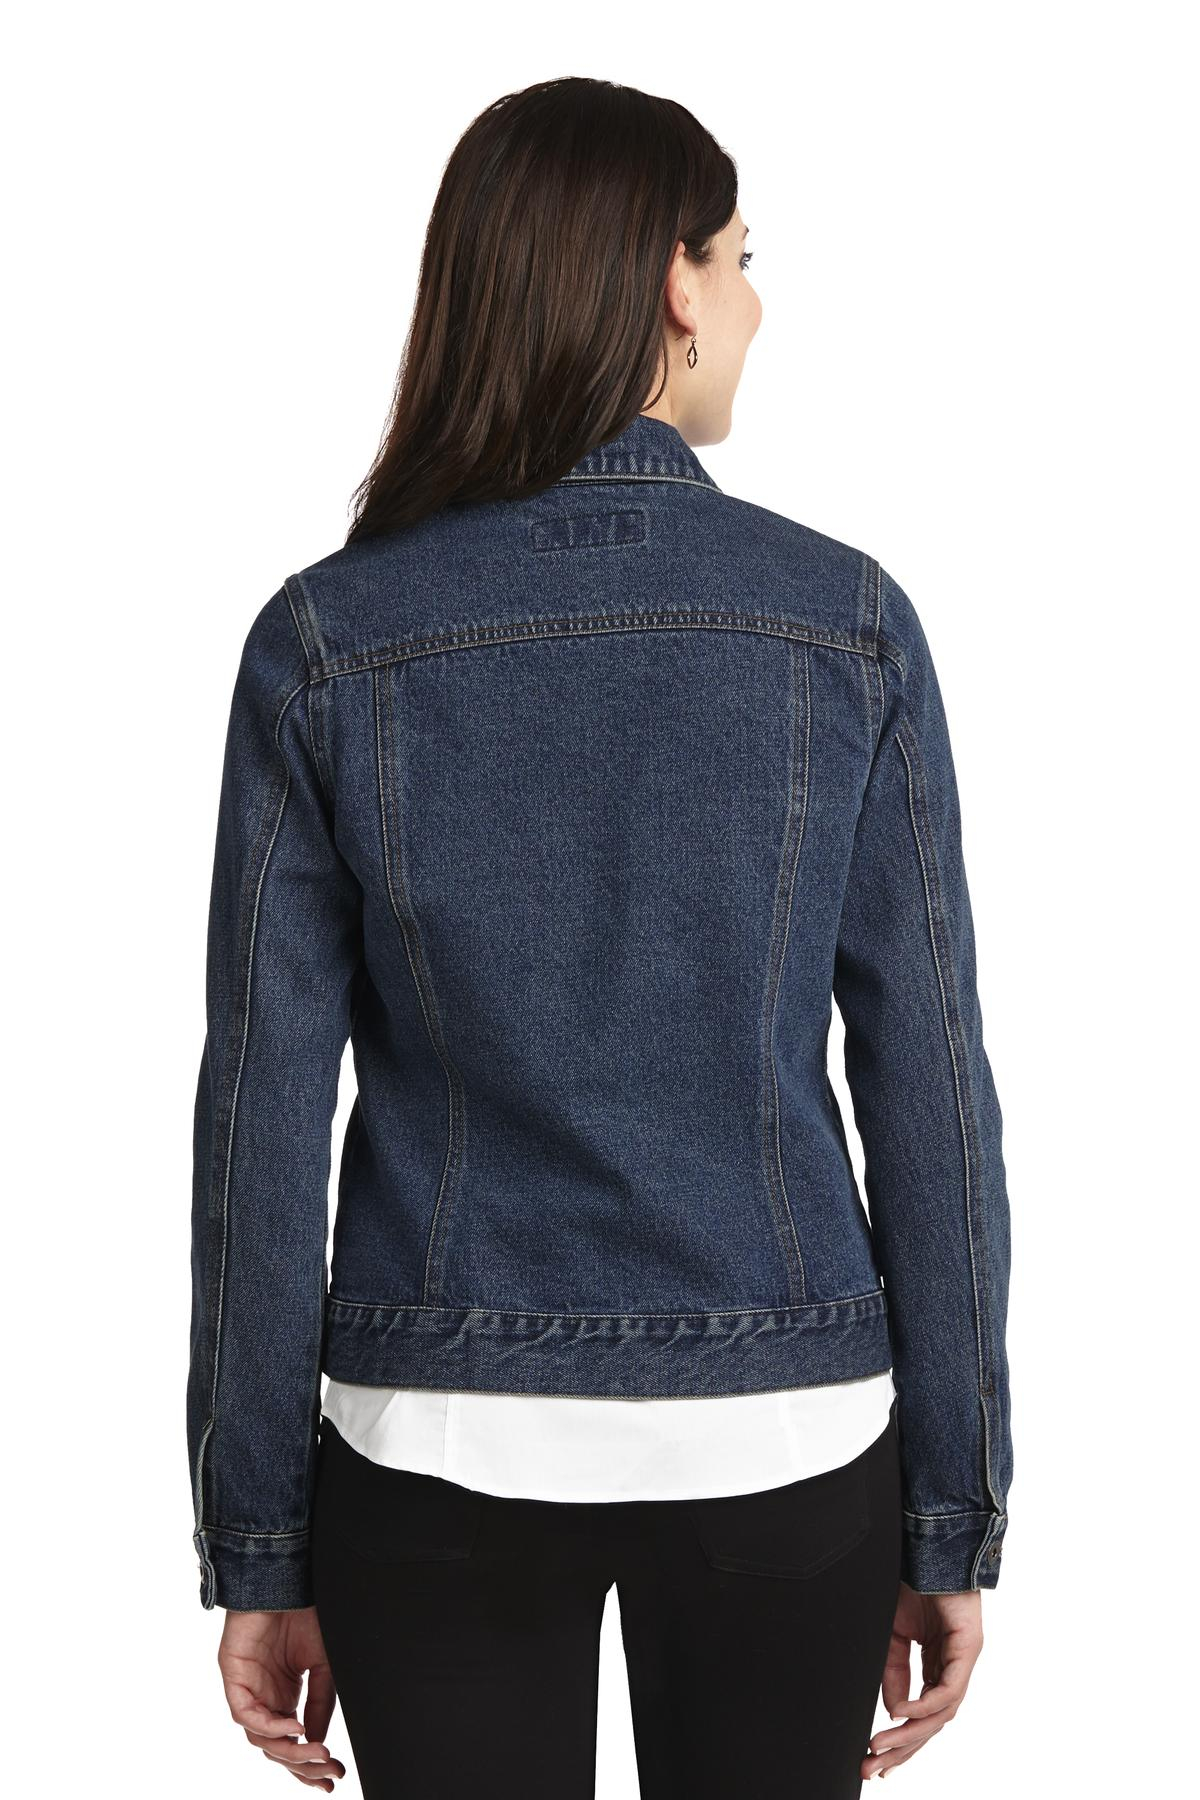 Ladies Denim Jacket - RCL3080